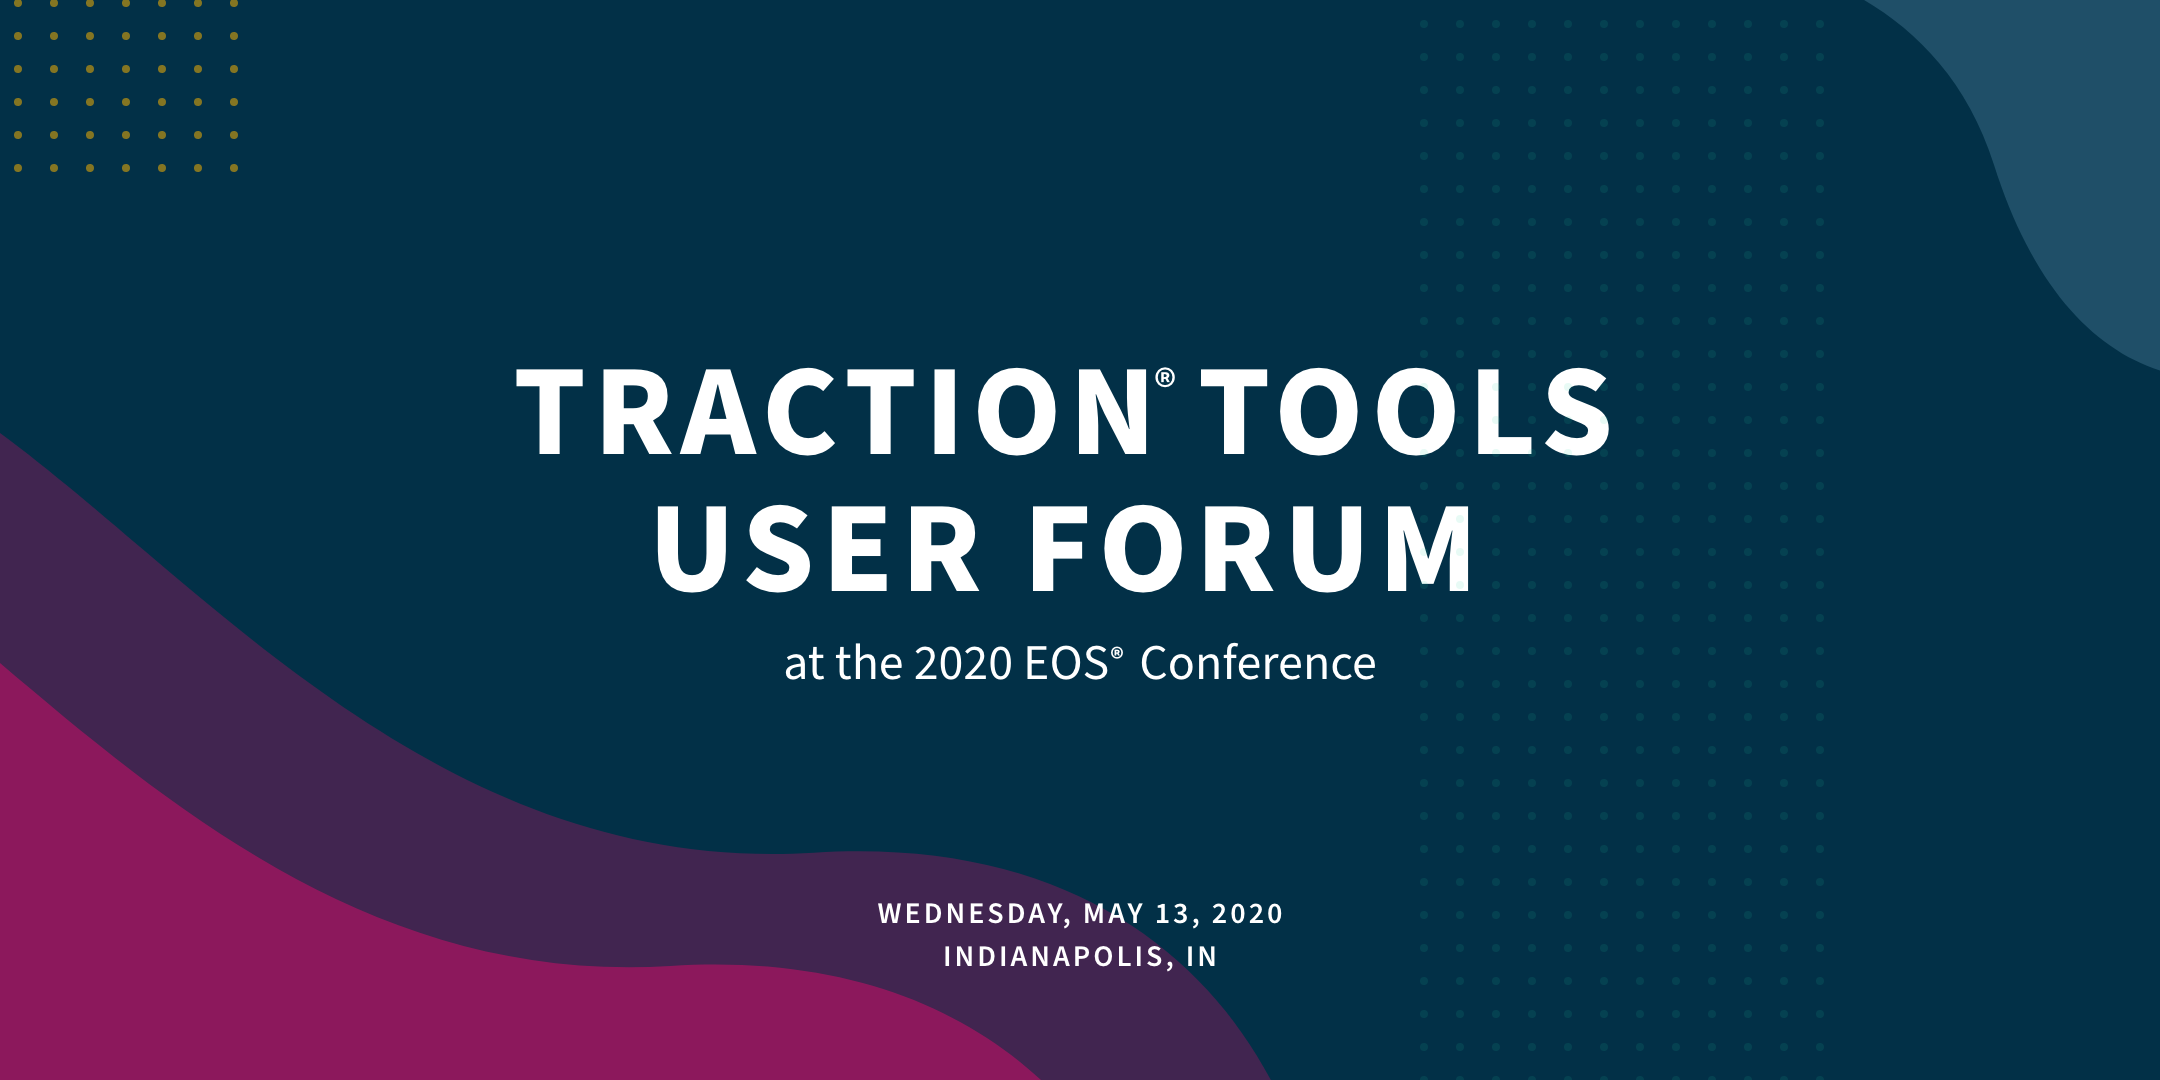 Traction Tools User Forum 2020